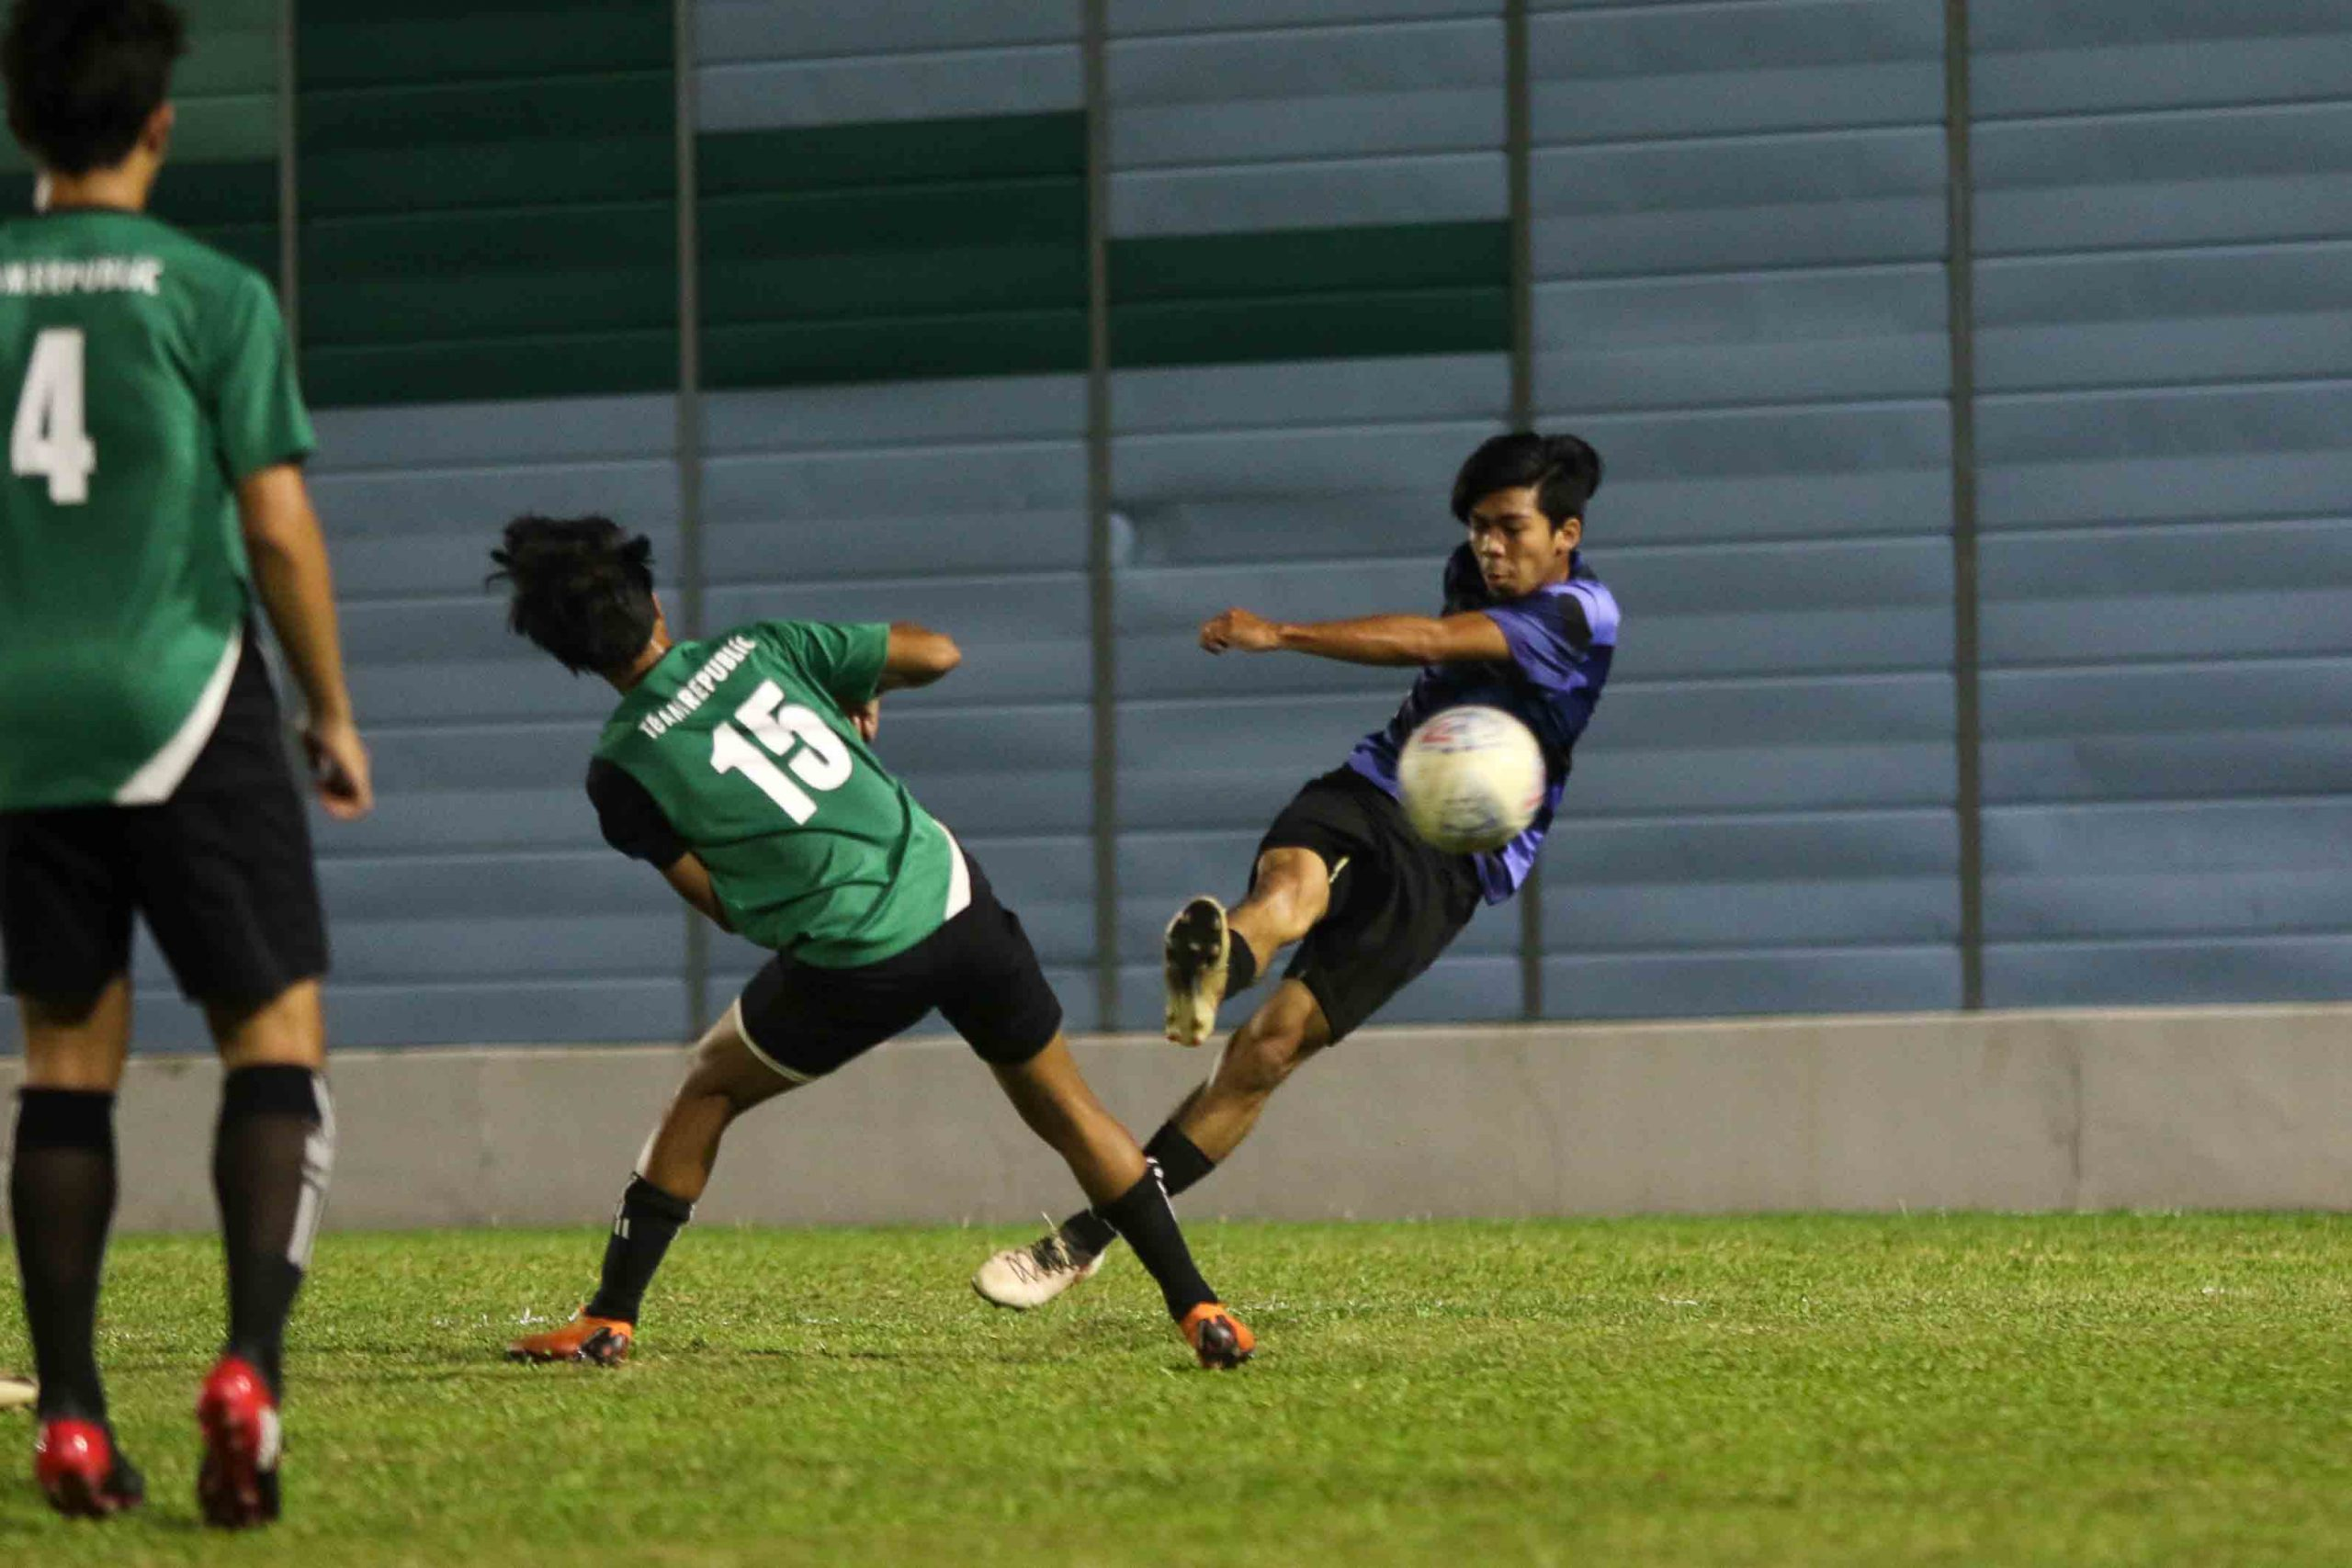 ITE earns hard fought 2-0 win over RP in POL-ITE fixture. (Photo 8 © Clara Lau/Red Sports)